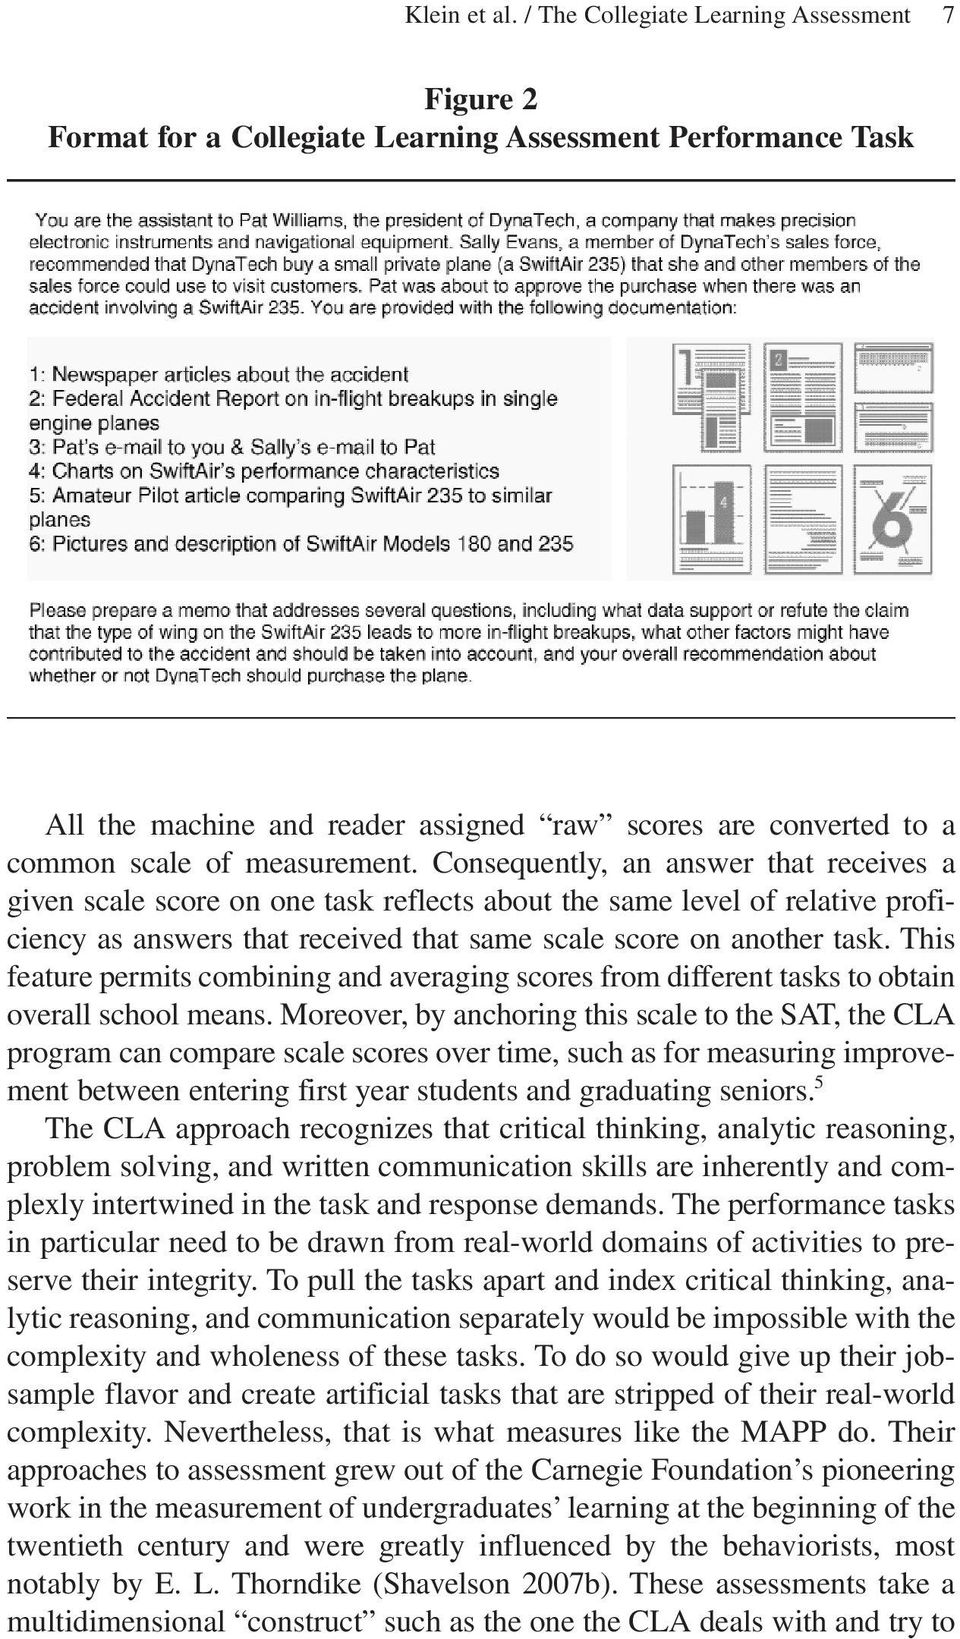 measurement. Consequently, an answer that receives a given scale score on one task reflects about the same level of relative proficiency as answers that received that same scale score on another task.